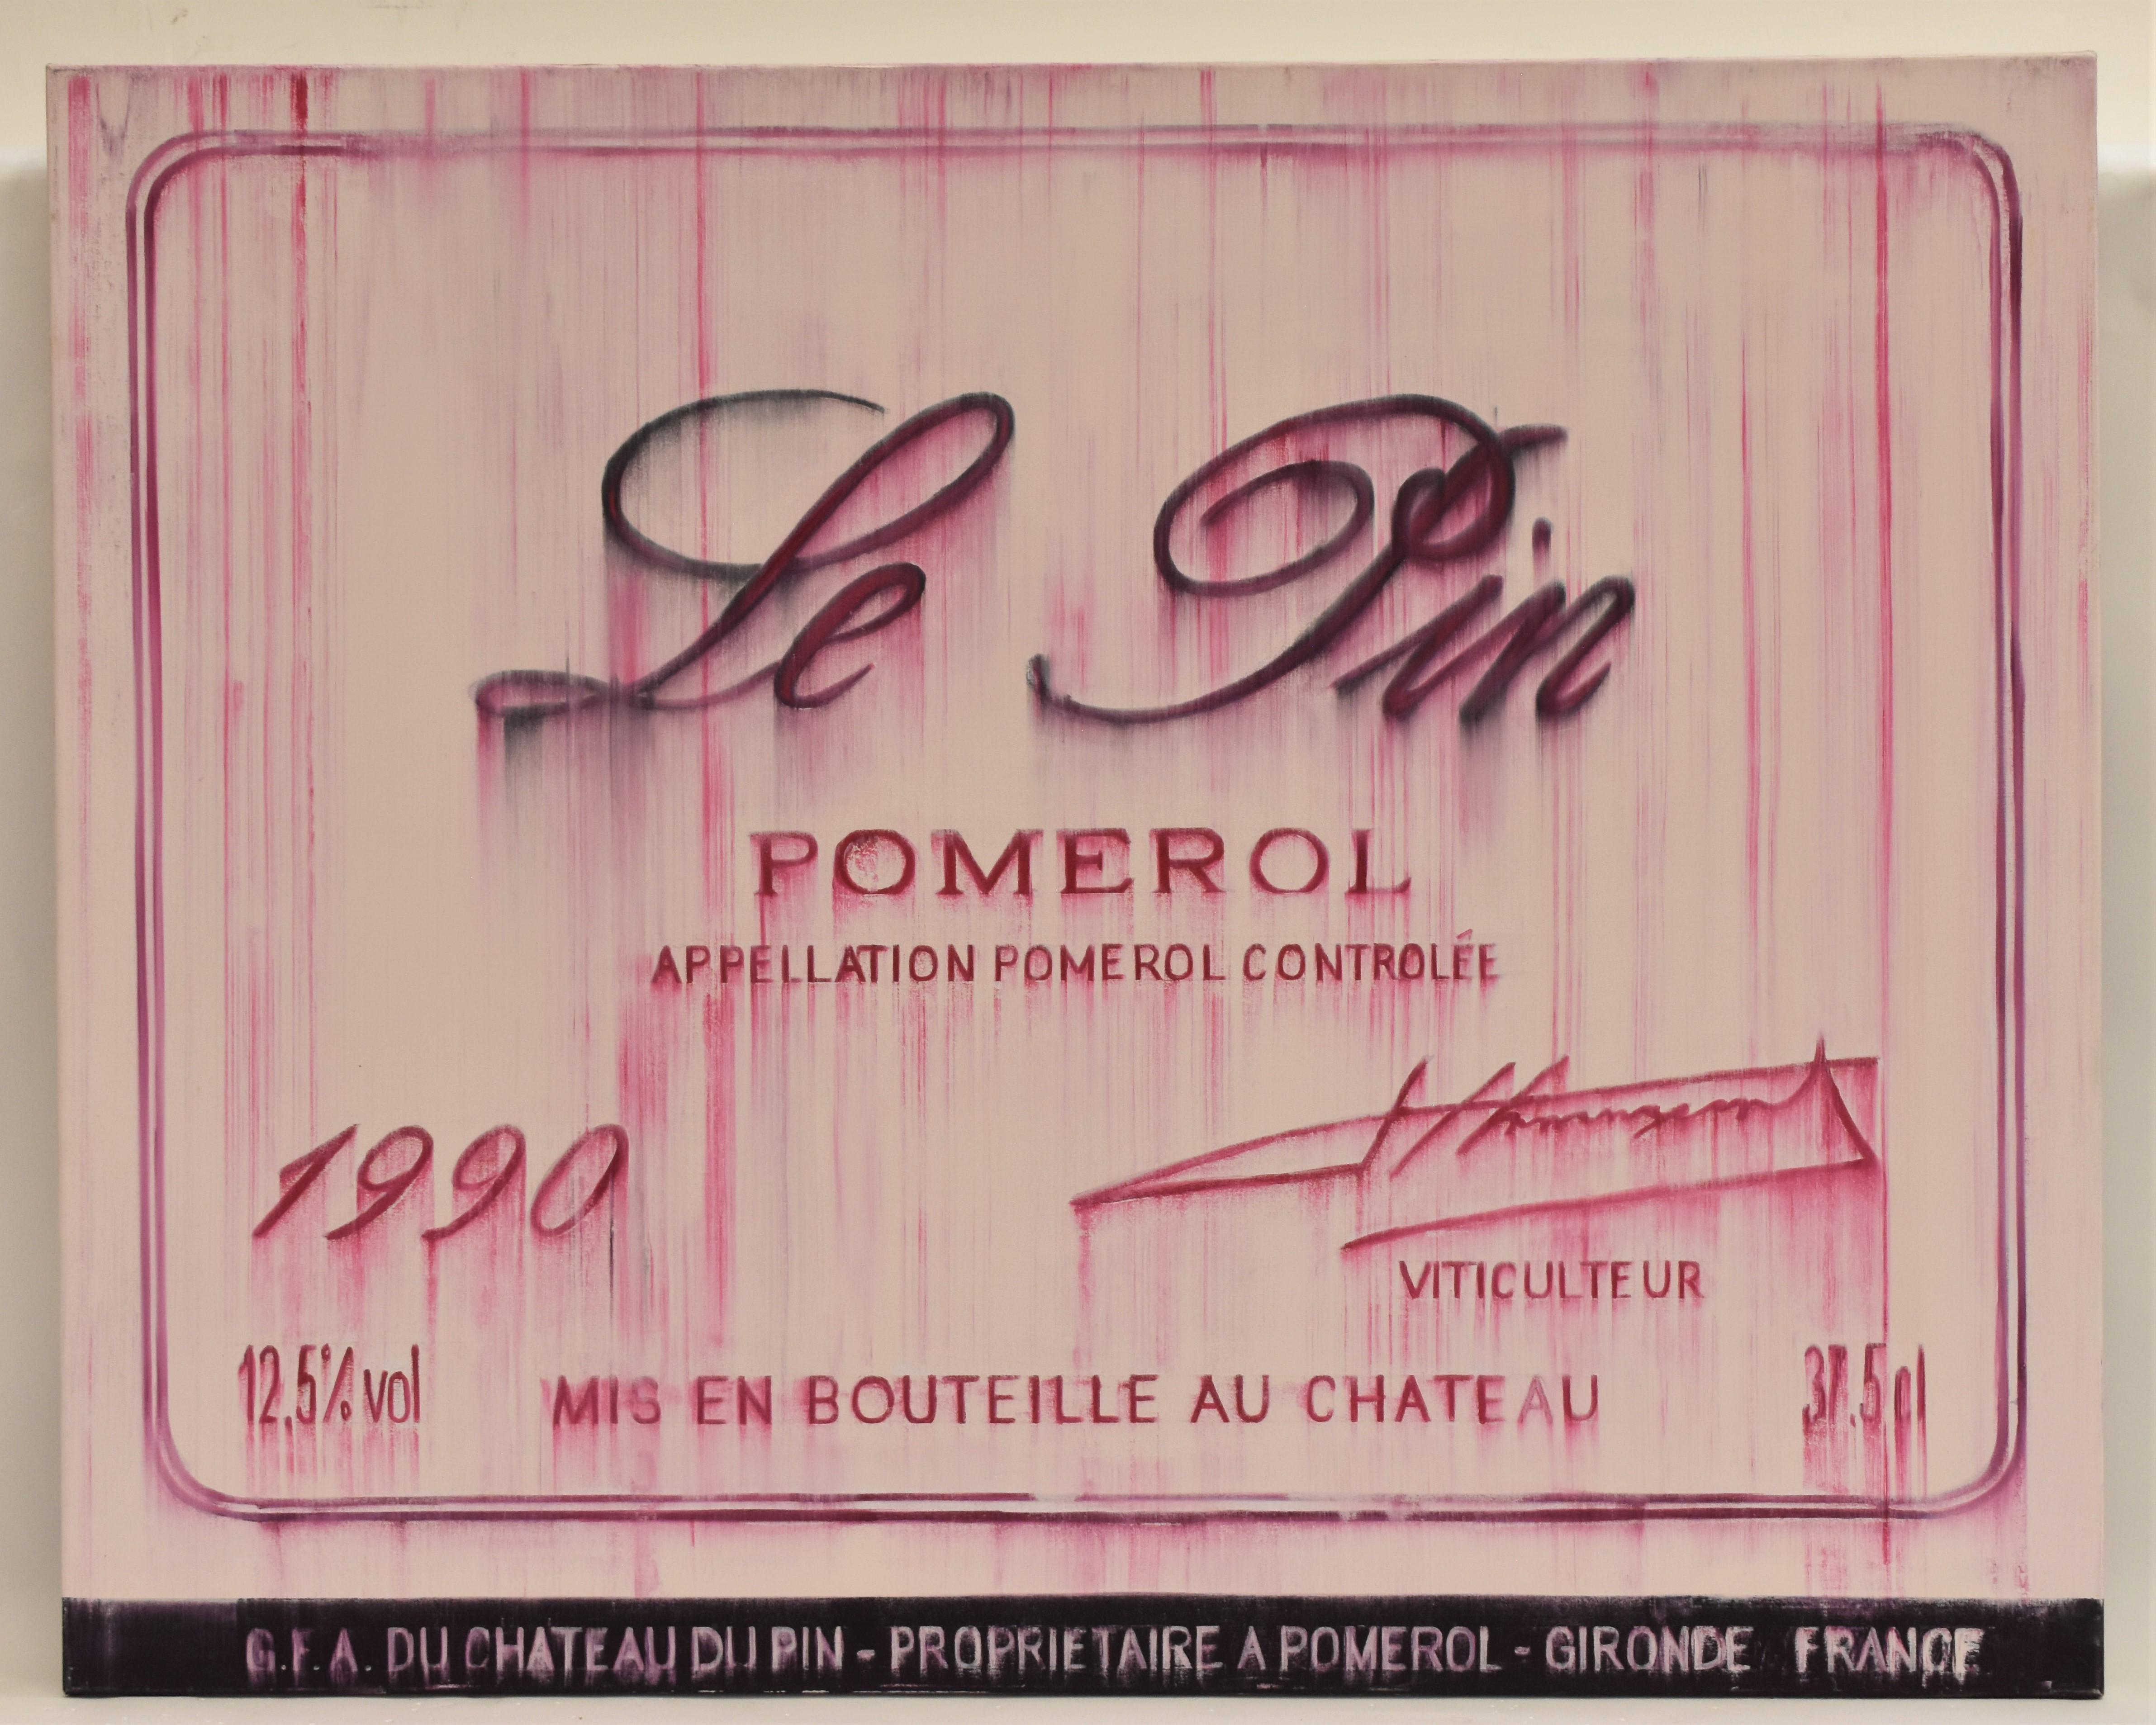 Chateau Le pin Pomerol 1990 oil on canvas - realist